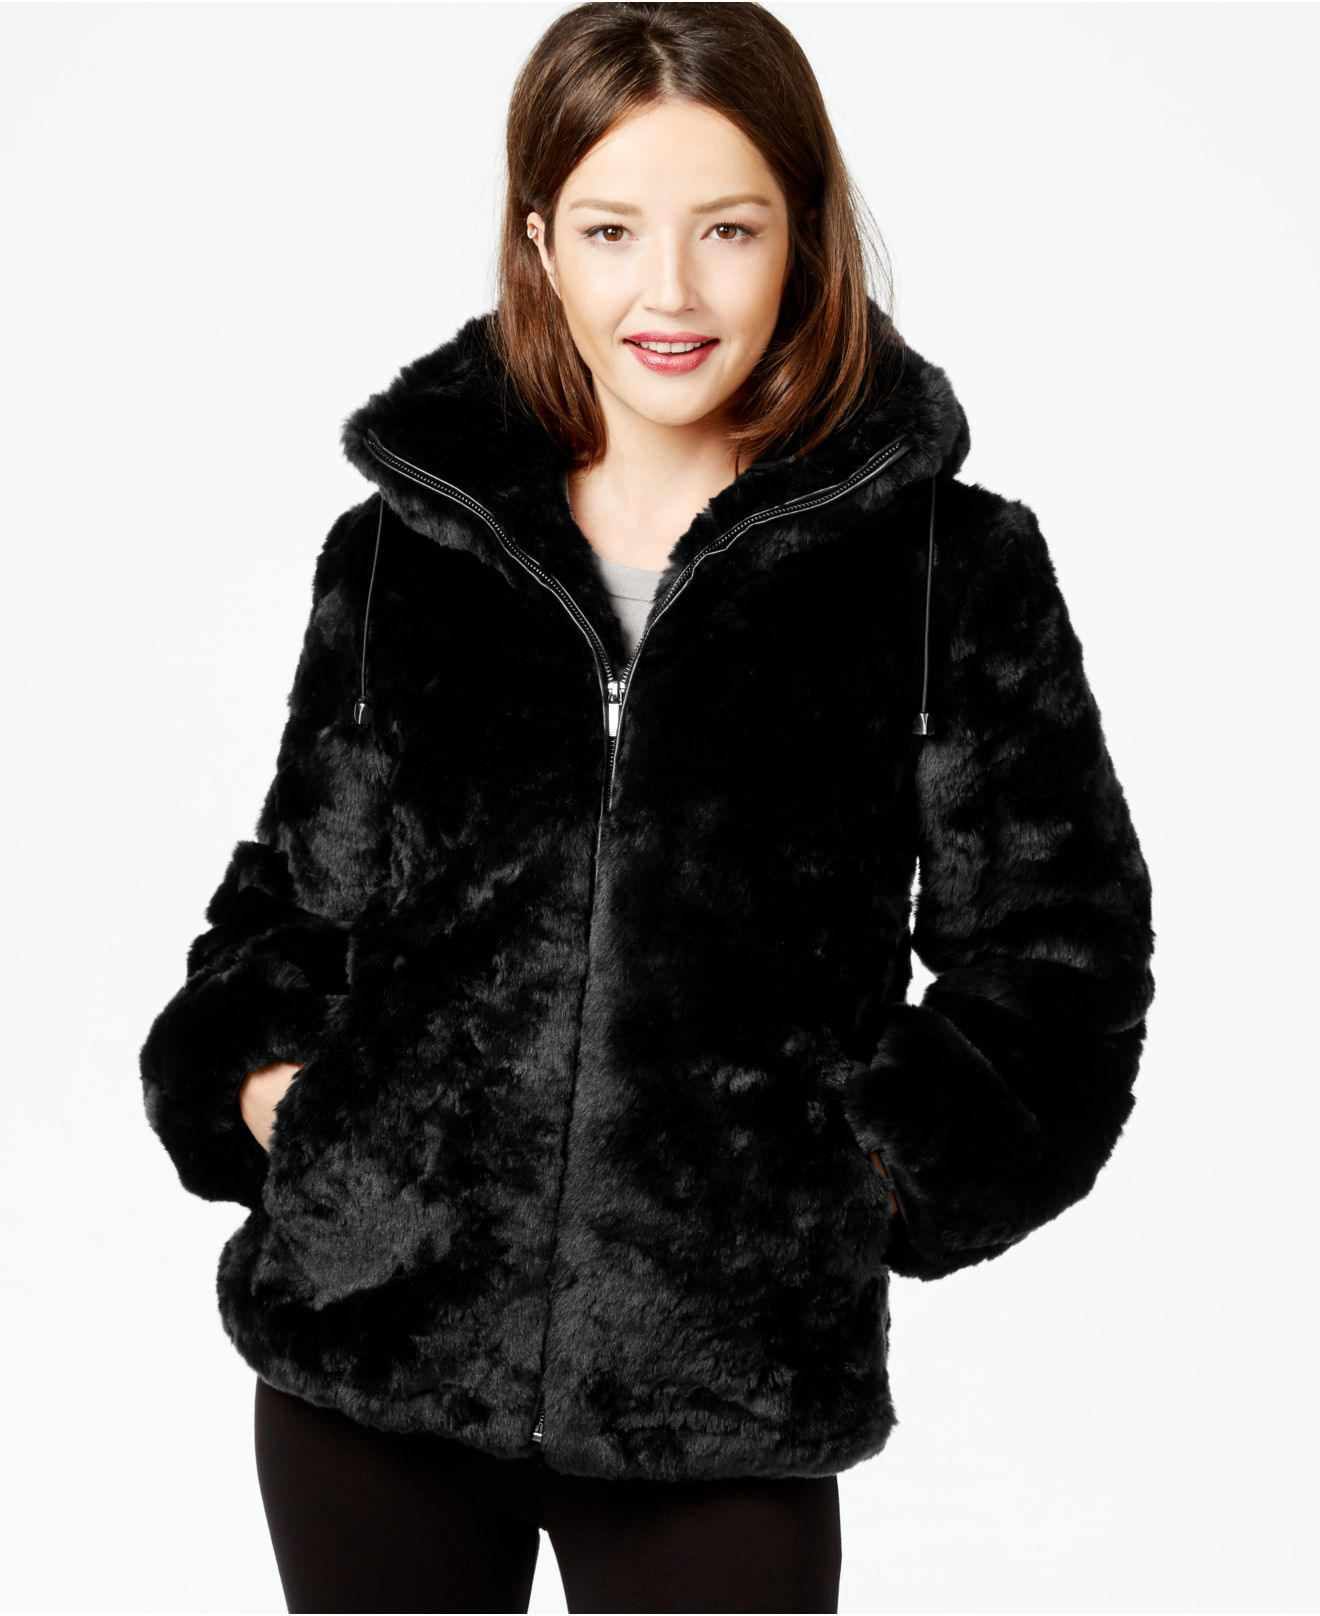 Faux Fur Coat With Hood Black - Tradingbasis